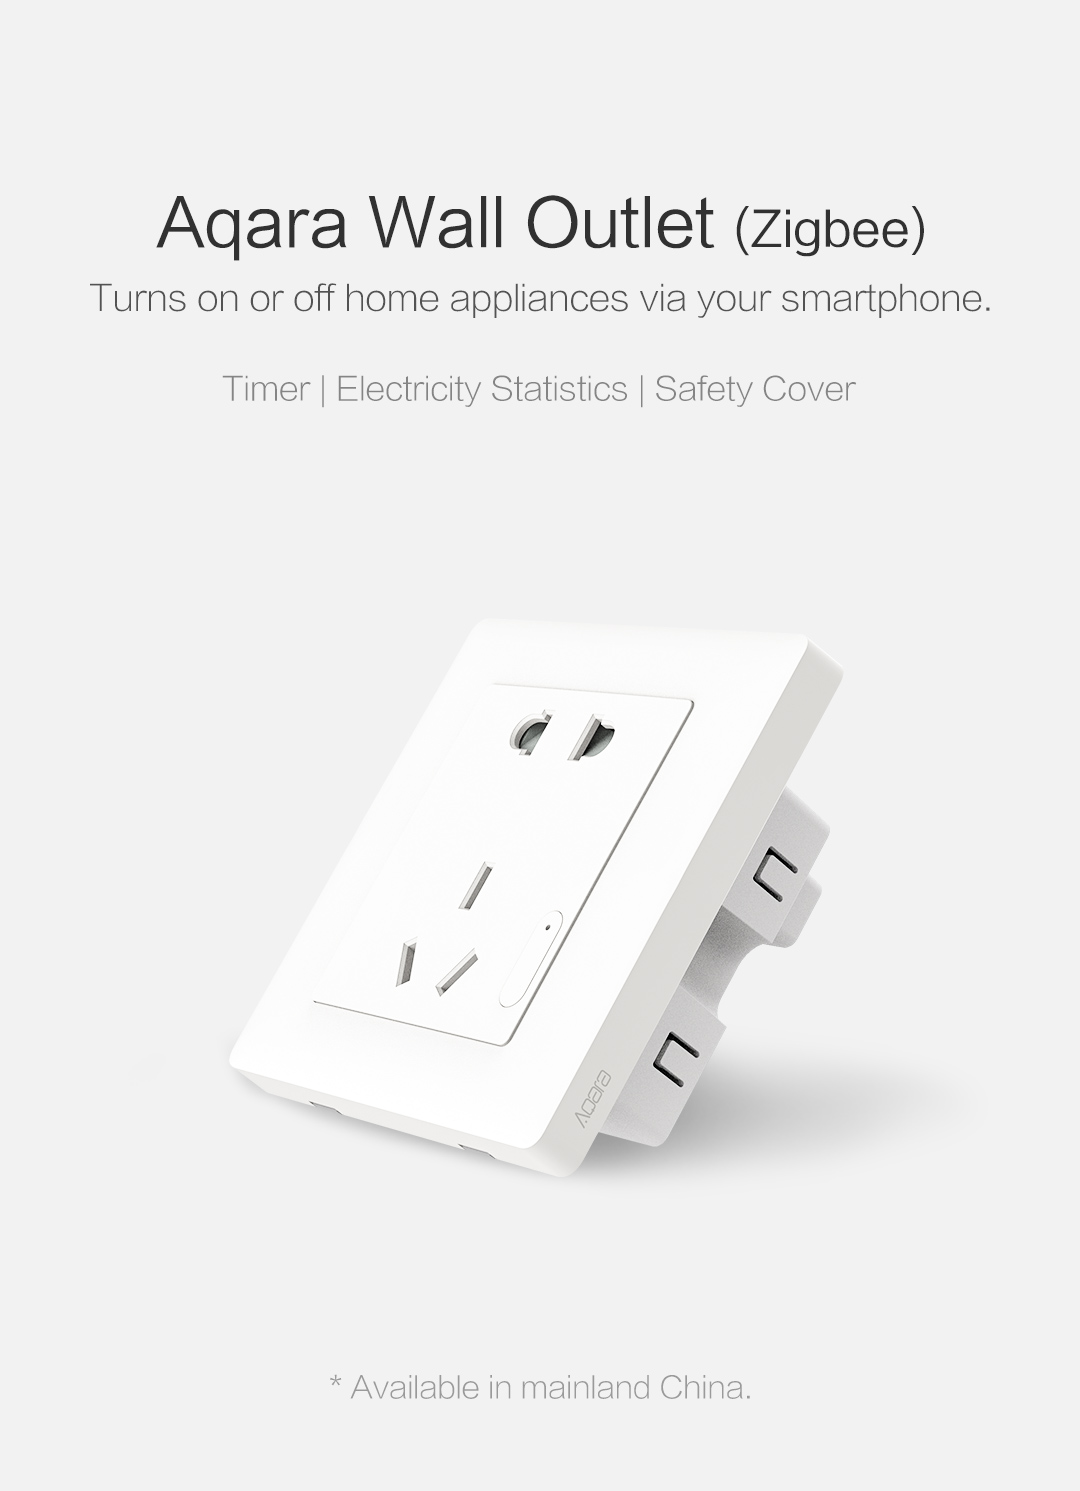 Aqara smart wall outlet - Turns on or off home appliances via your smartphone